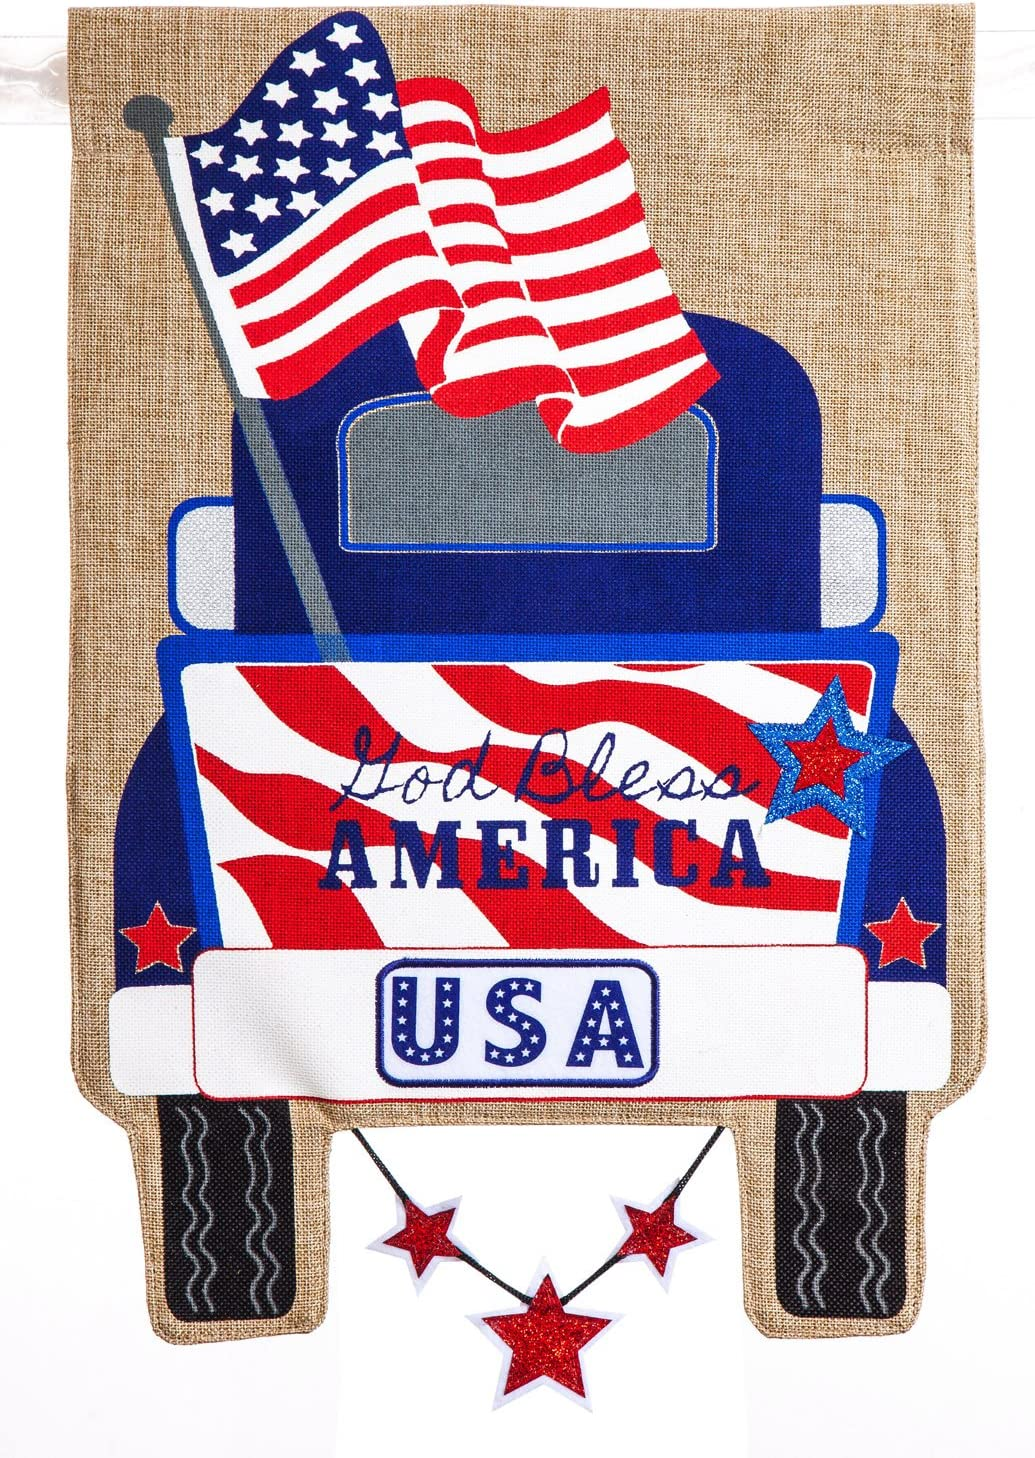 Evergreen Flag Patriotic Pickup Truck Garden Burlap Flag - 12.5 x 18 Inches Outdoor Decor for Homes and Gardens